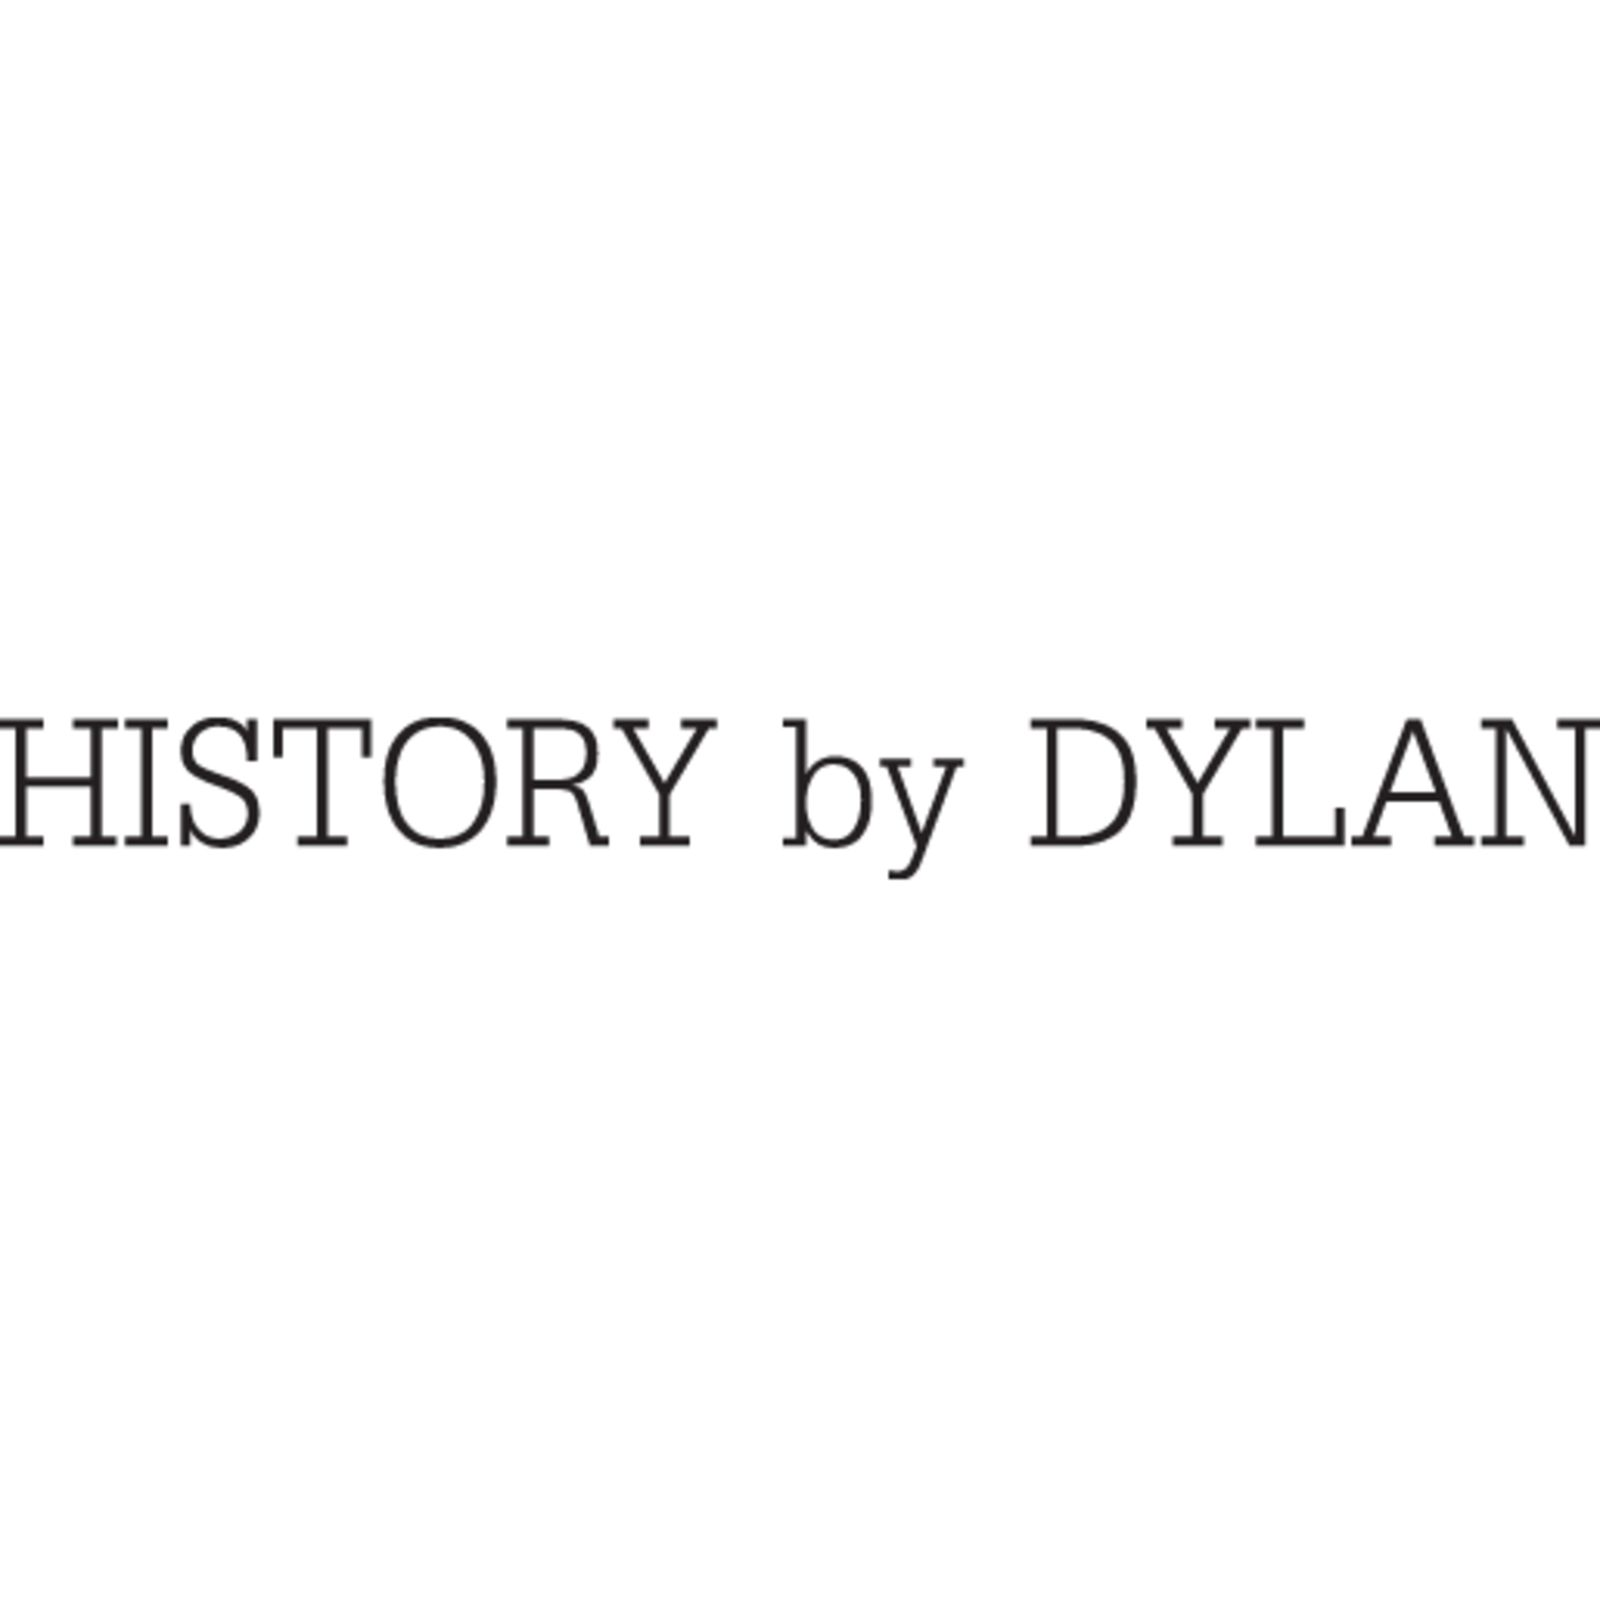 HISTORY by DYLAN